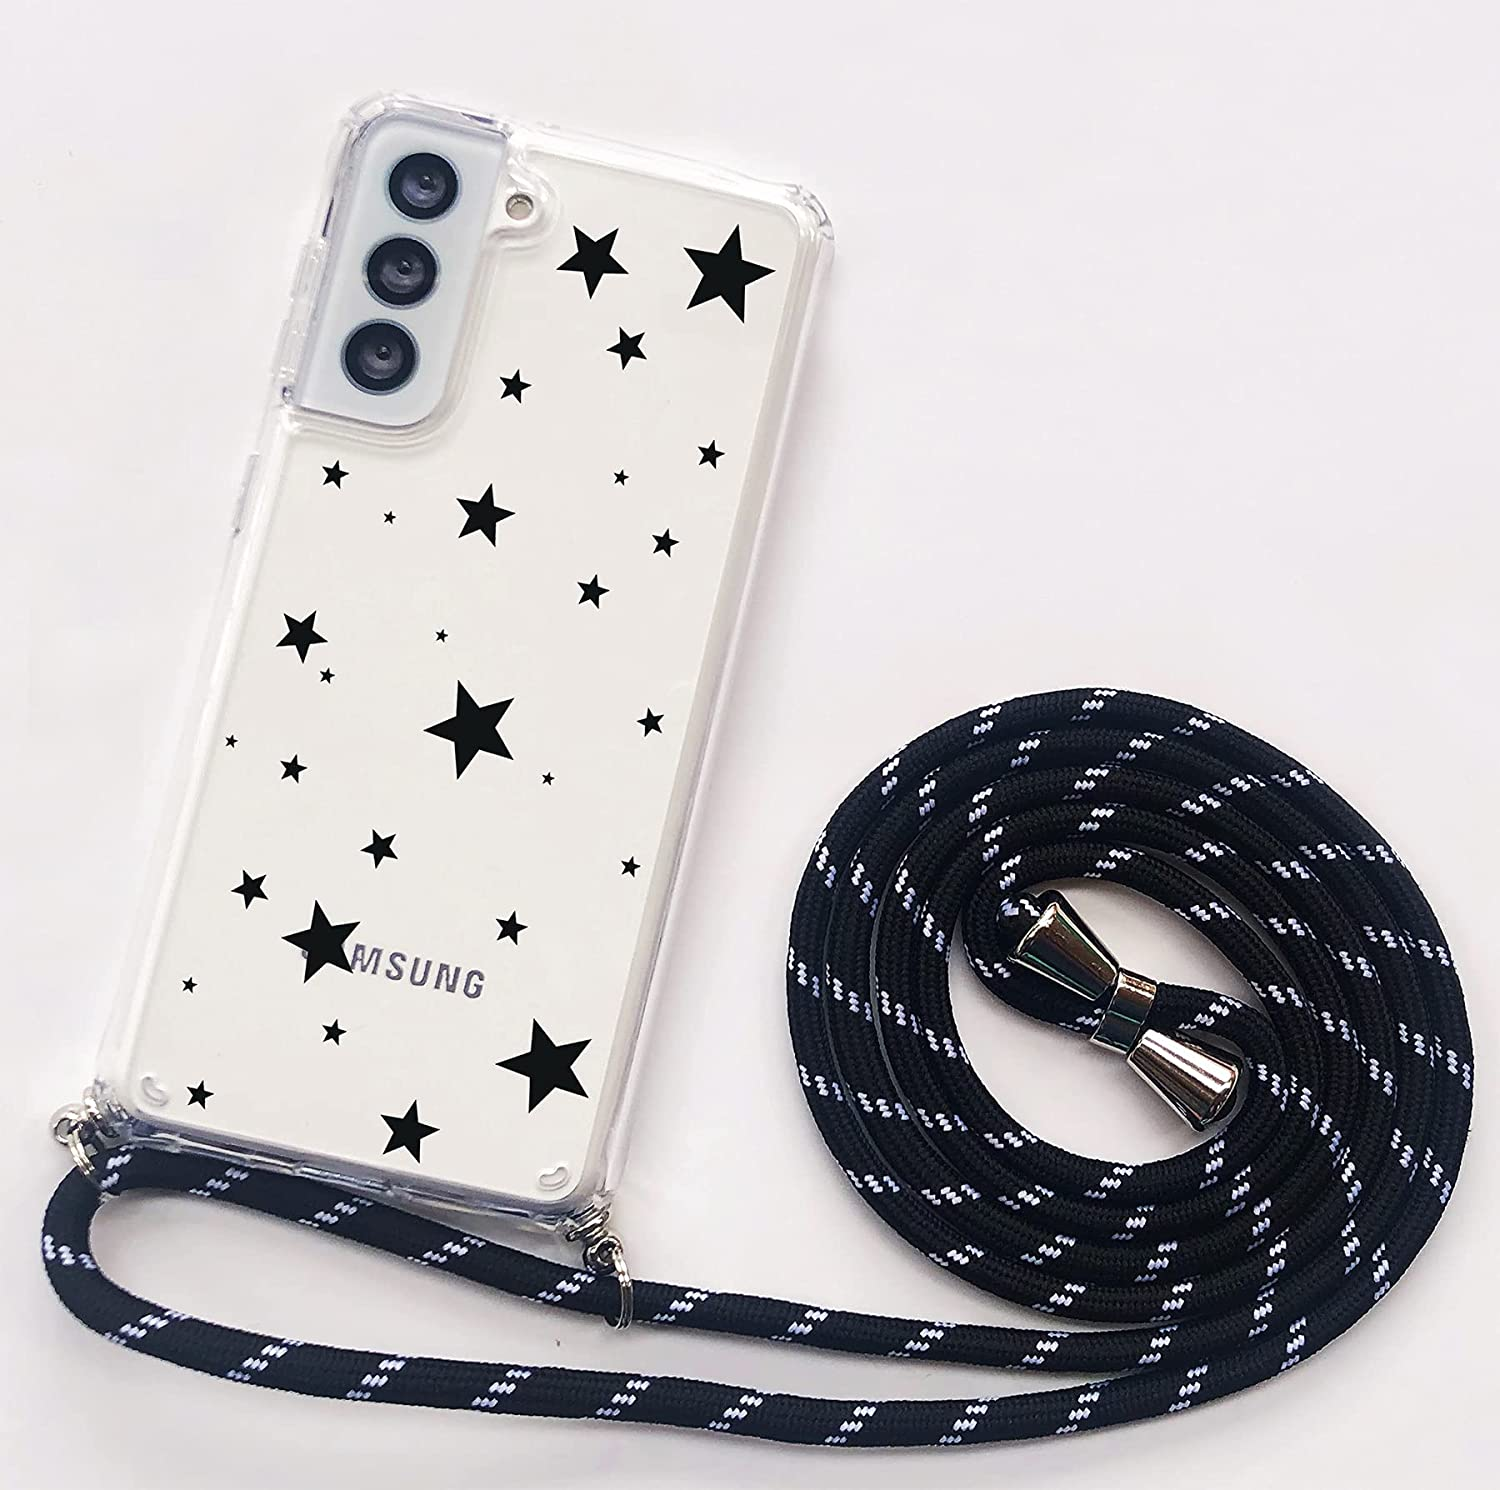 Crossbody Lanyard Phone case for Samsung Galaxy S21 Plus,Cute Pattern Clear Design Transparent Hard PC Back+Soft TPU Bumper Anti-Fall and Shockproof Protective Cover with Adjustable Neck Strap(Star)